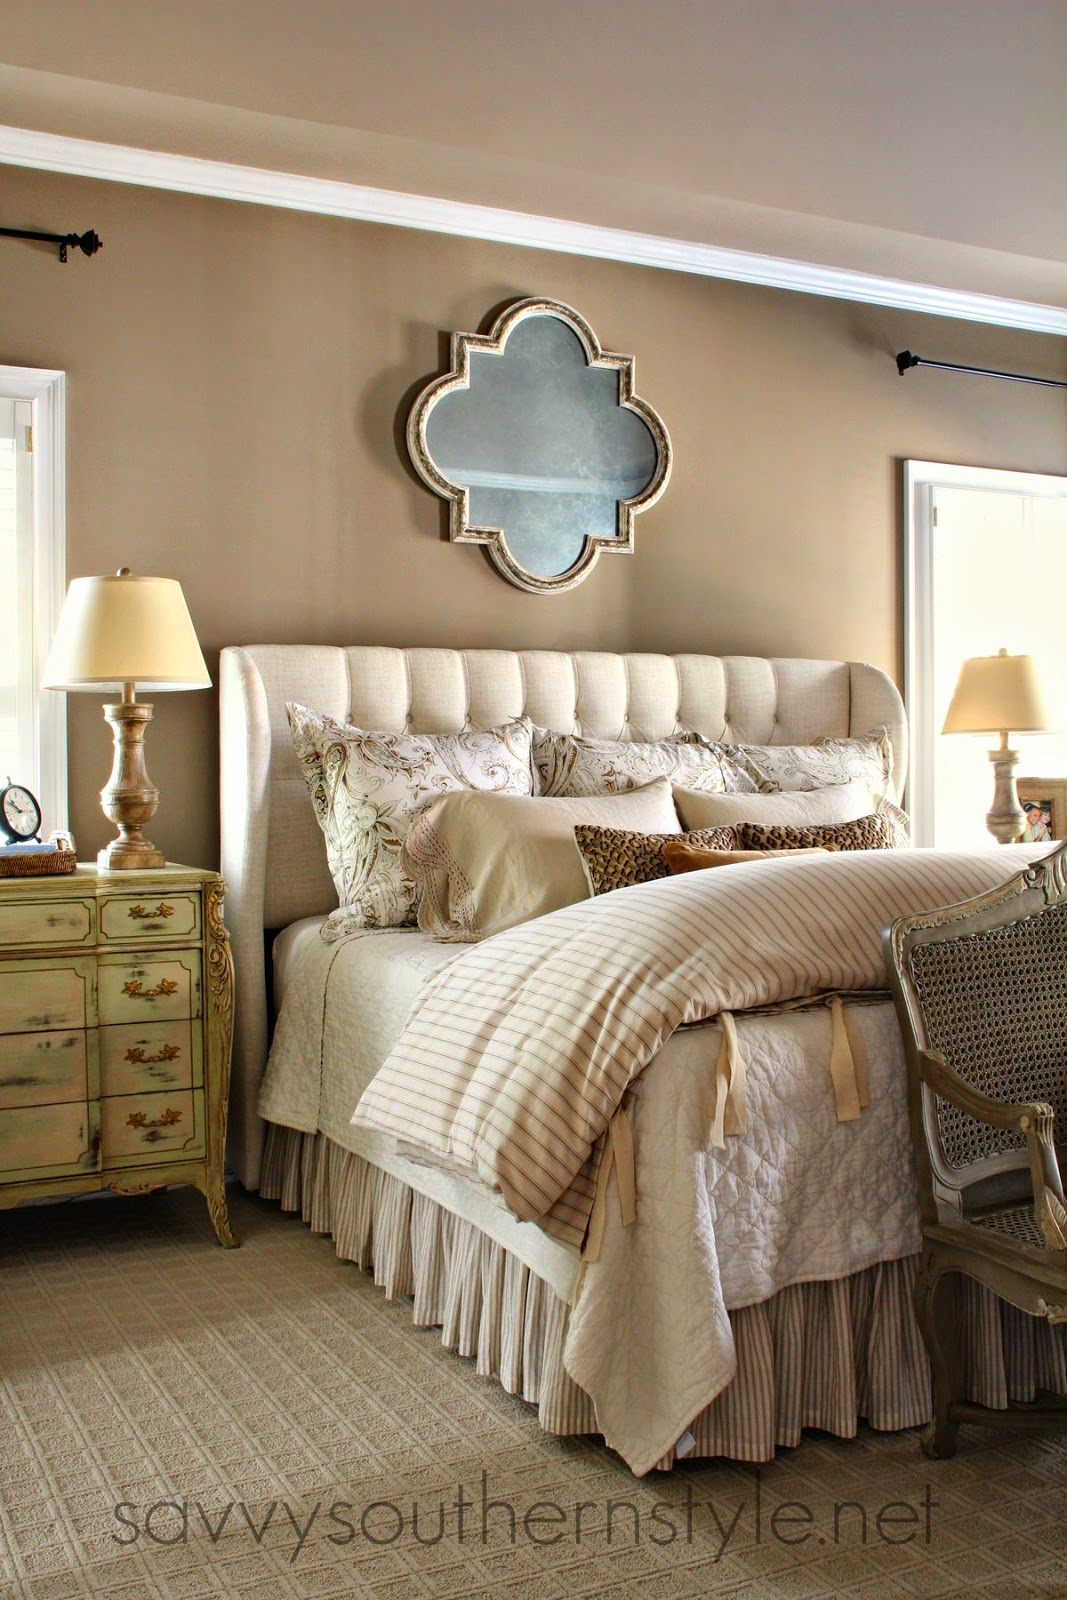 Savvy Southern Style  Master Bedroom Source List